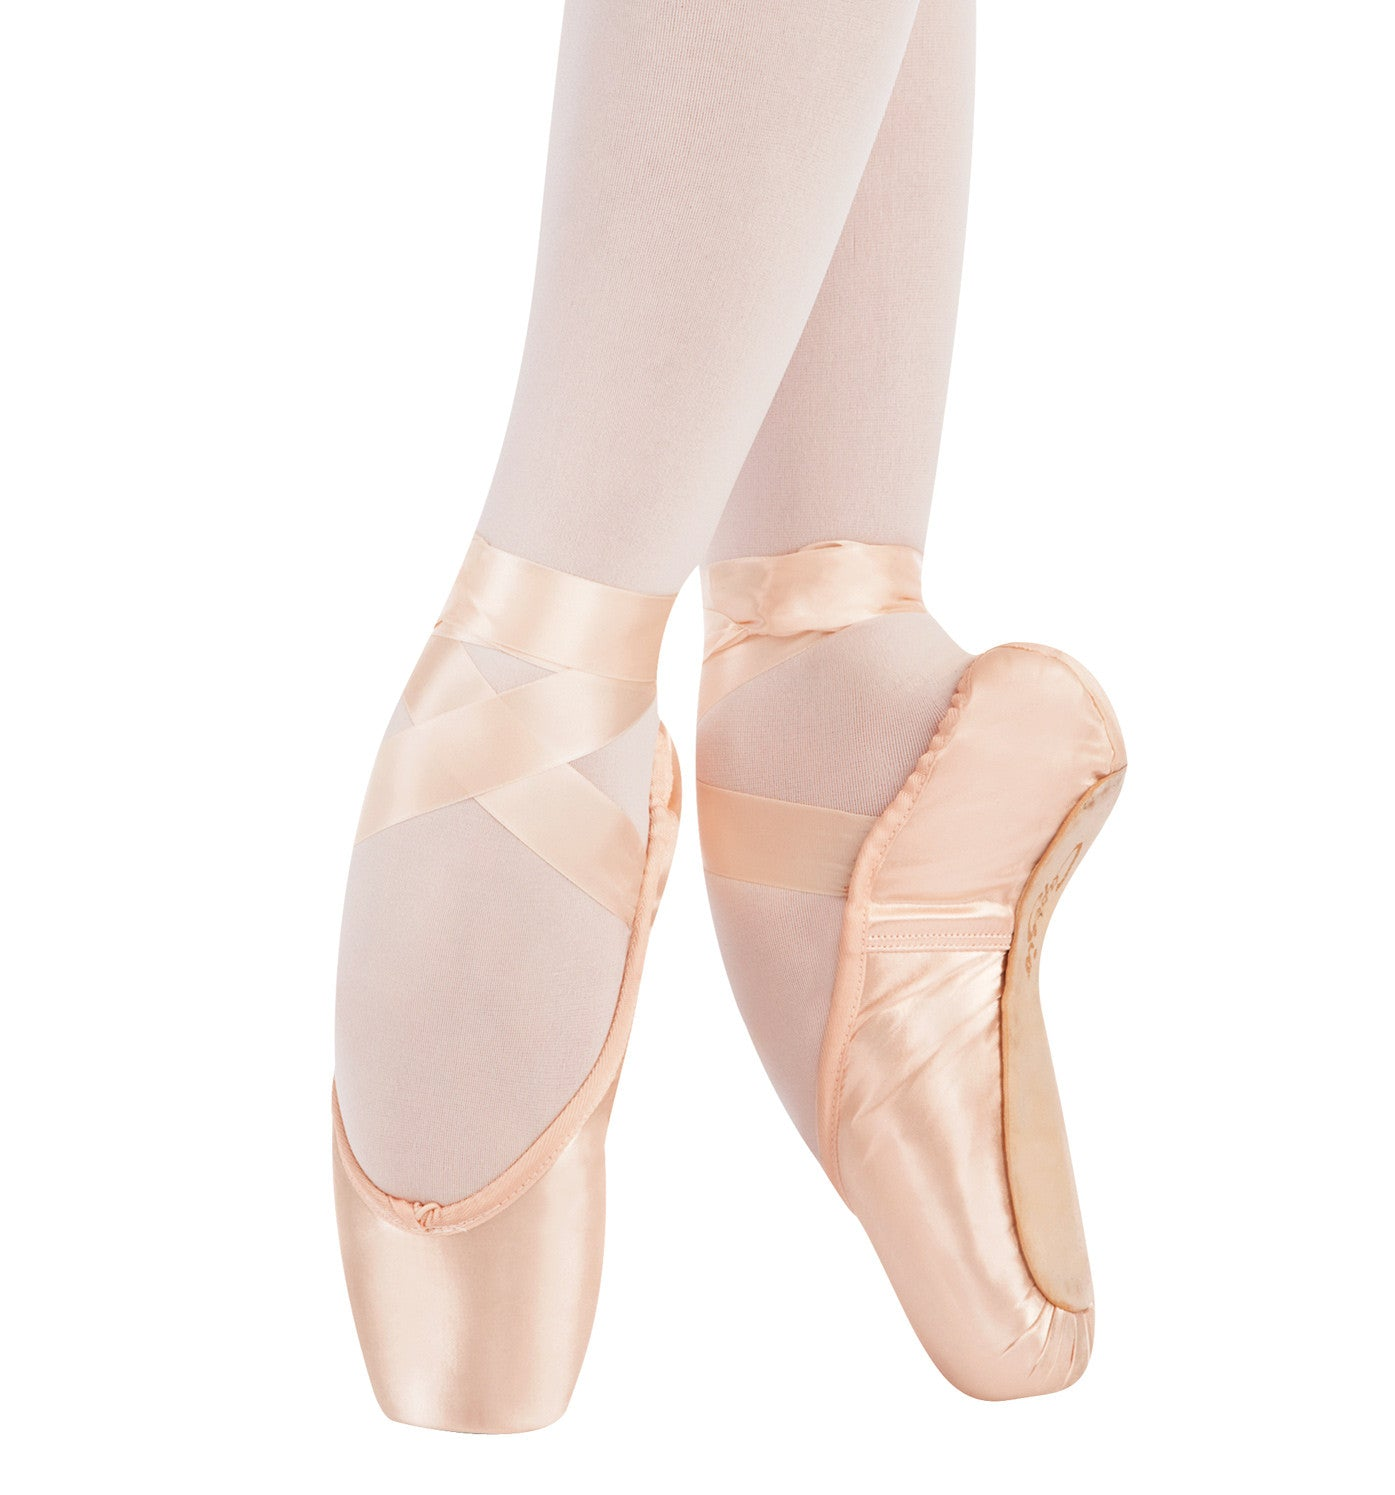 Adult Tiffany Pointe Shoes Medium Shank for Women